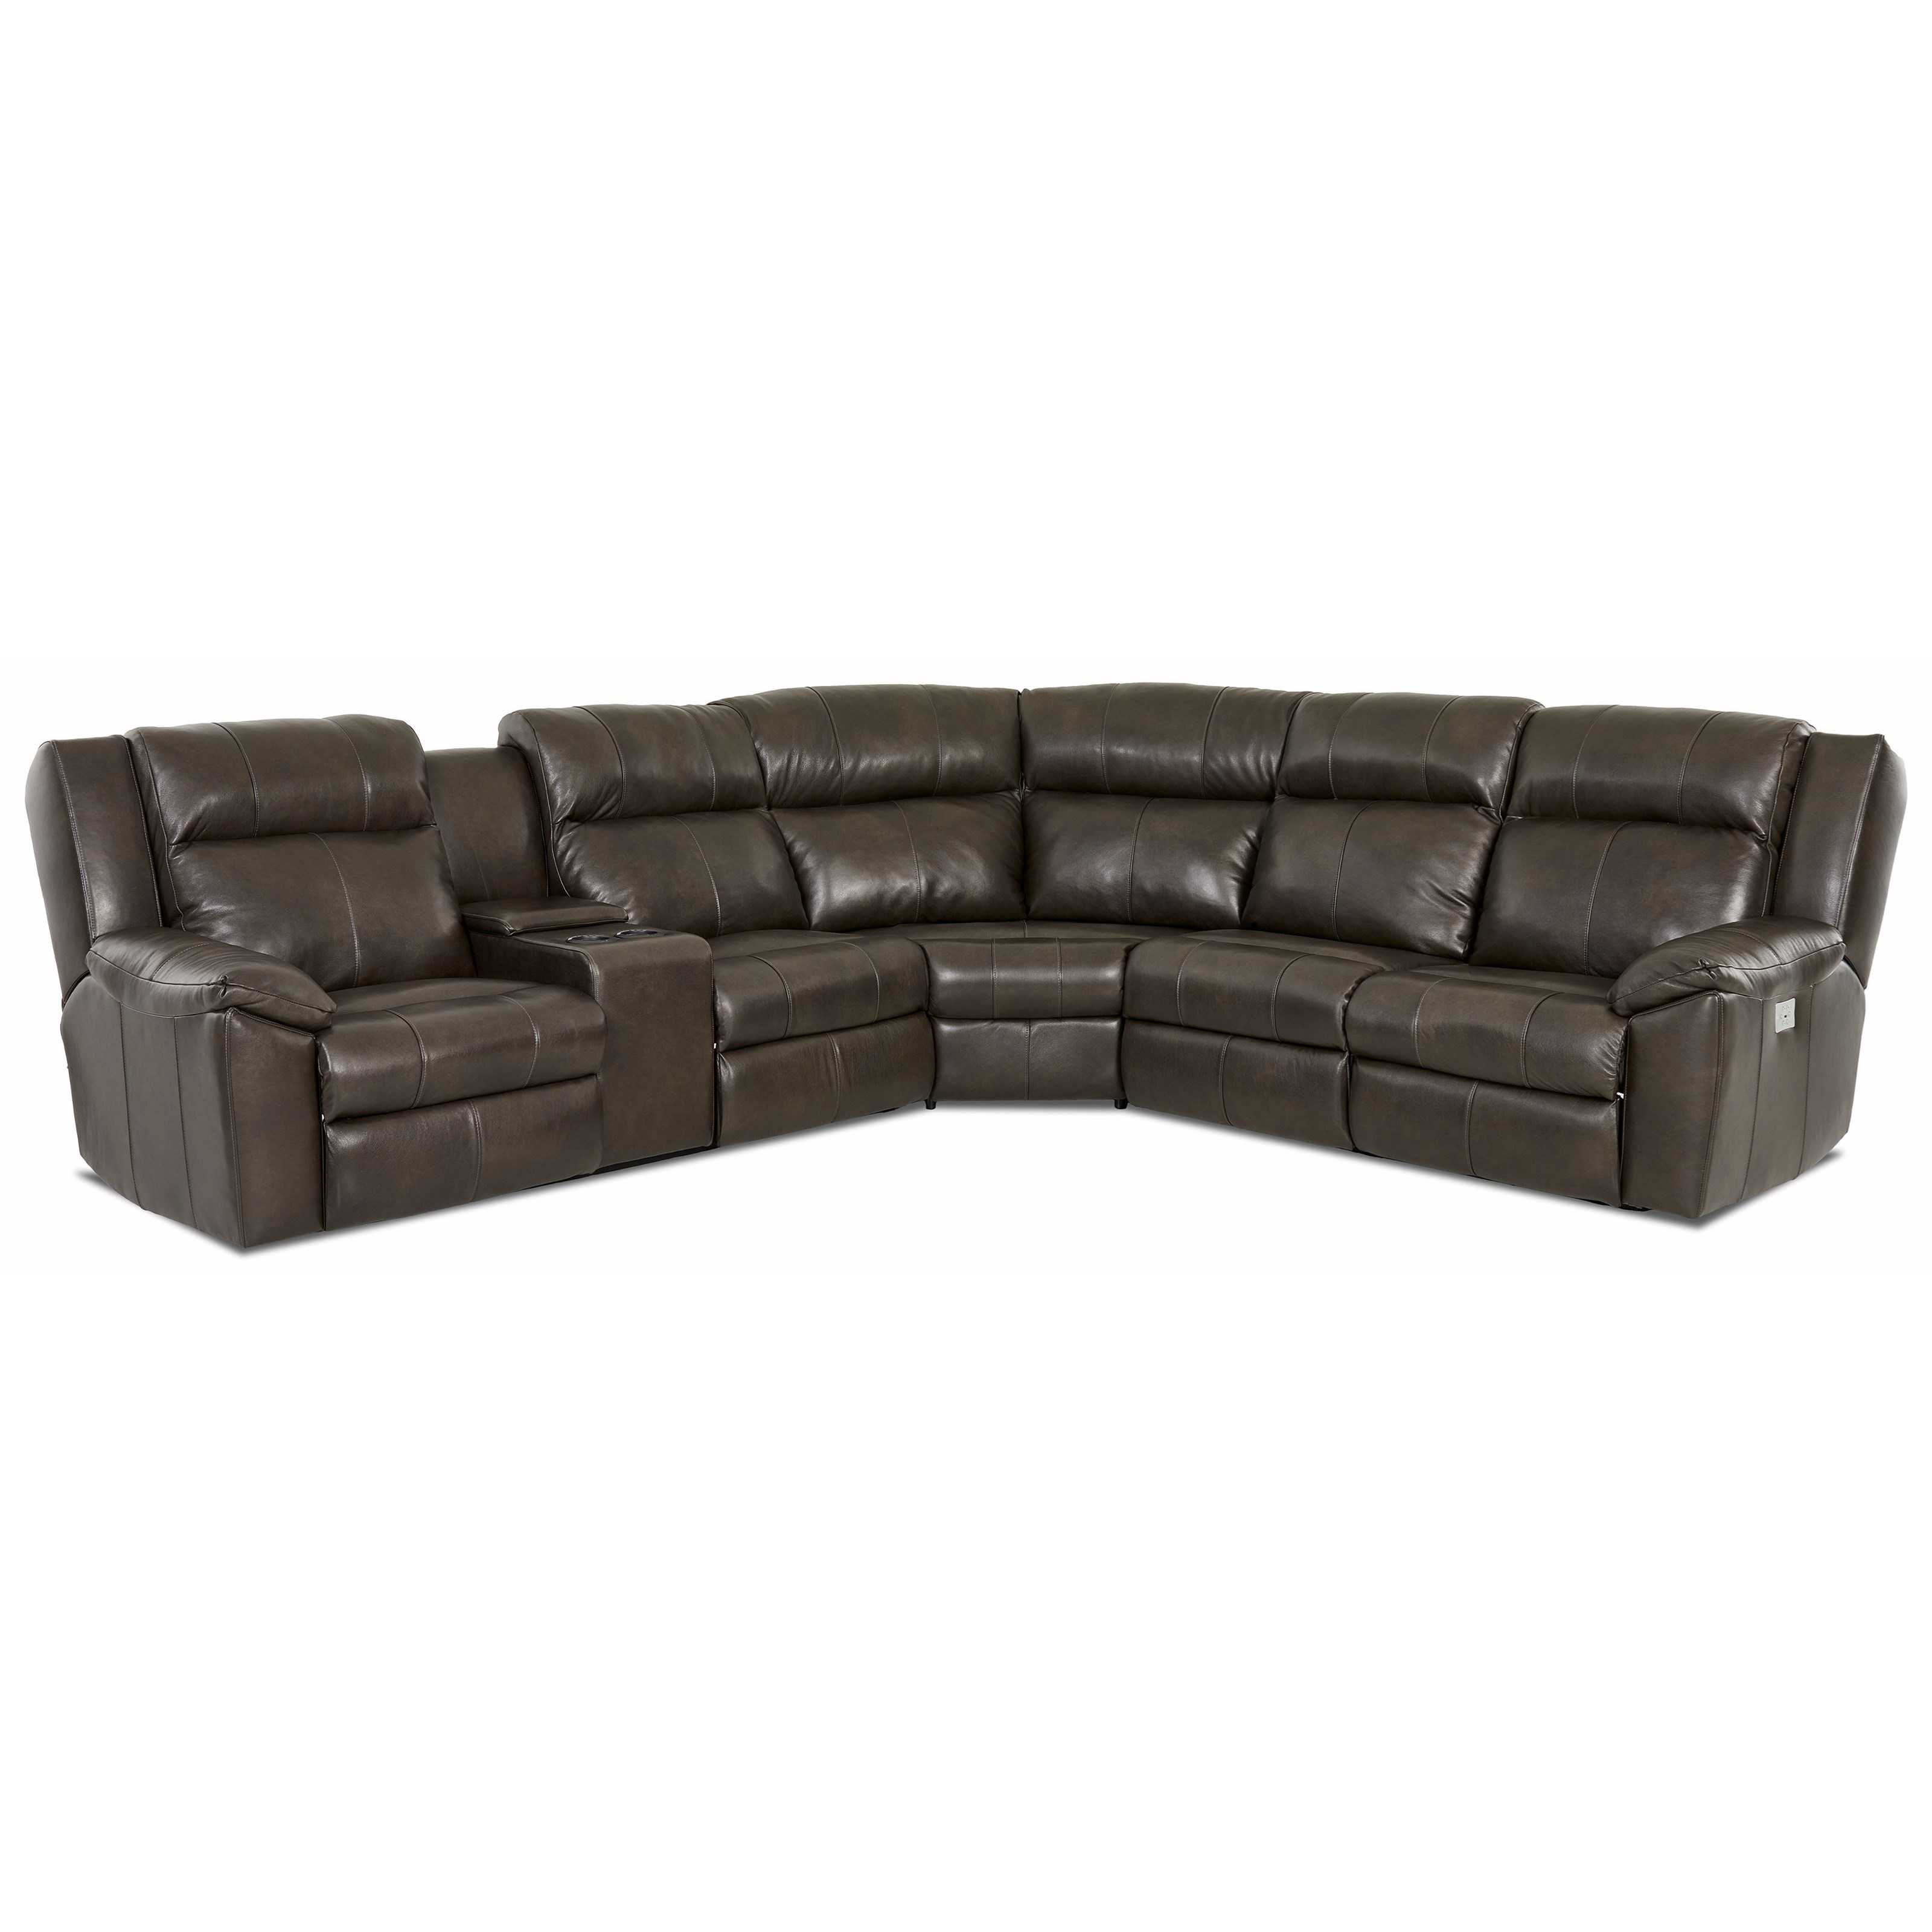 Klaussner Ridley 3 Piece Reclining Sectional With Power Headrest And Laf Console Loveseat Dunk